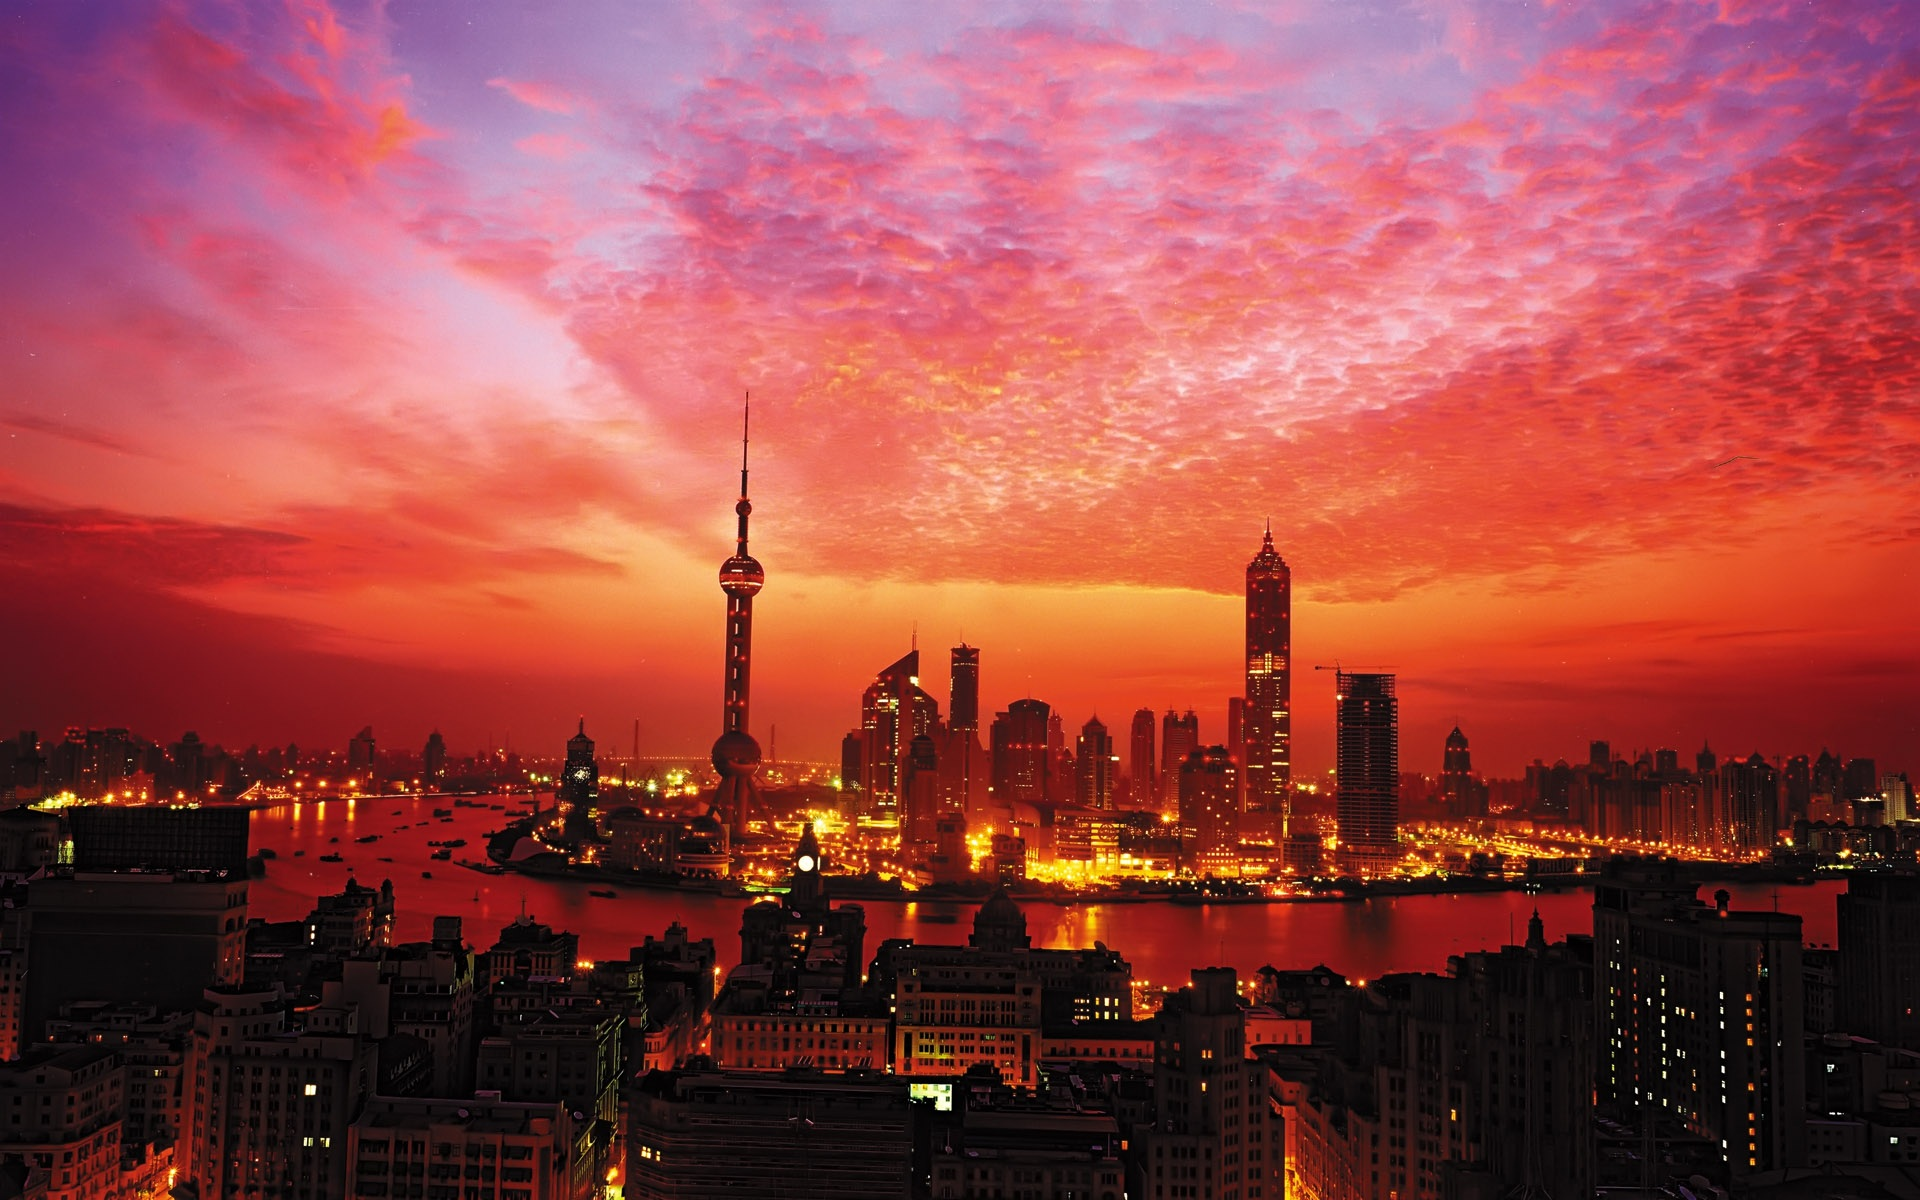 Sunset-in-Shanghai_1920x1200